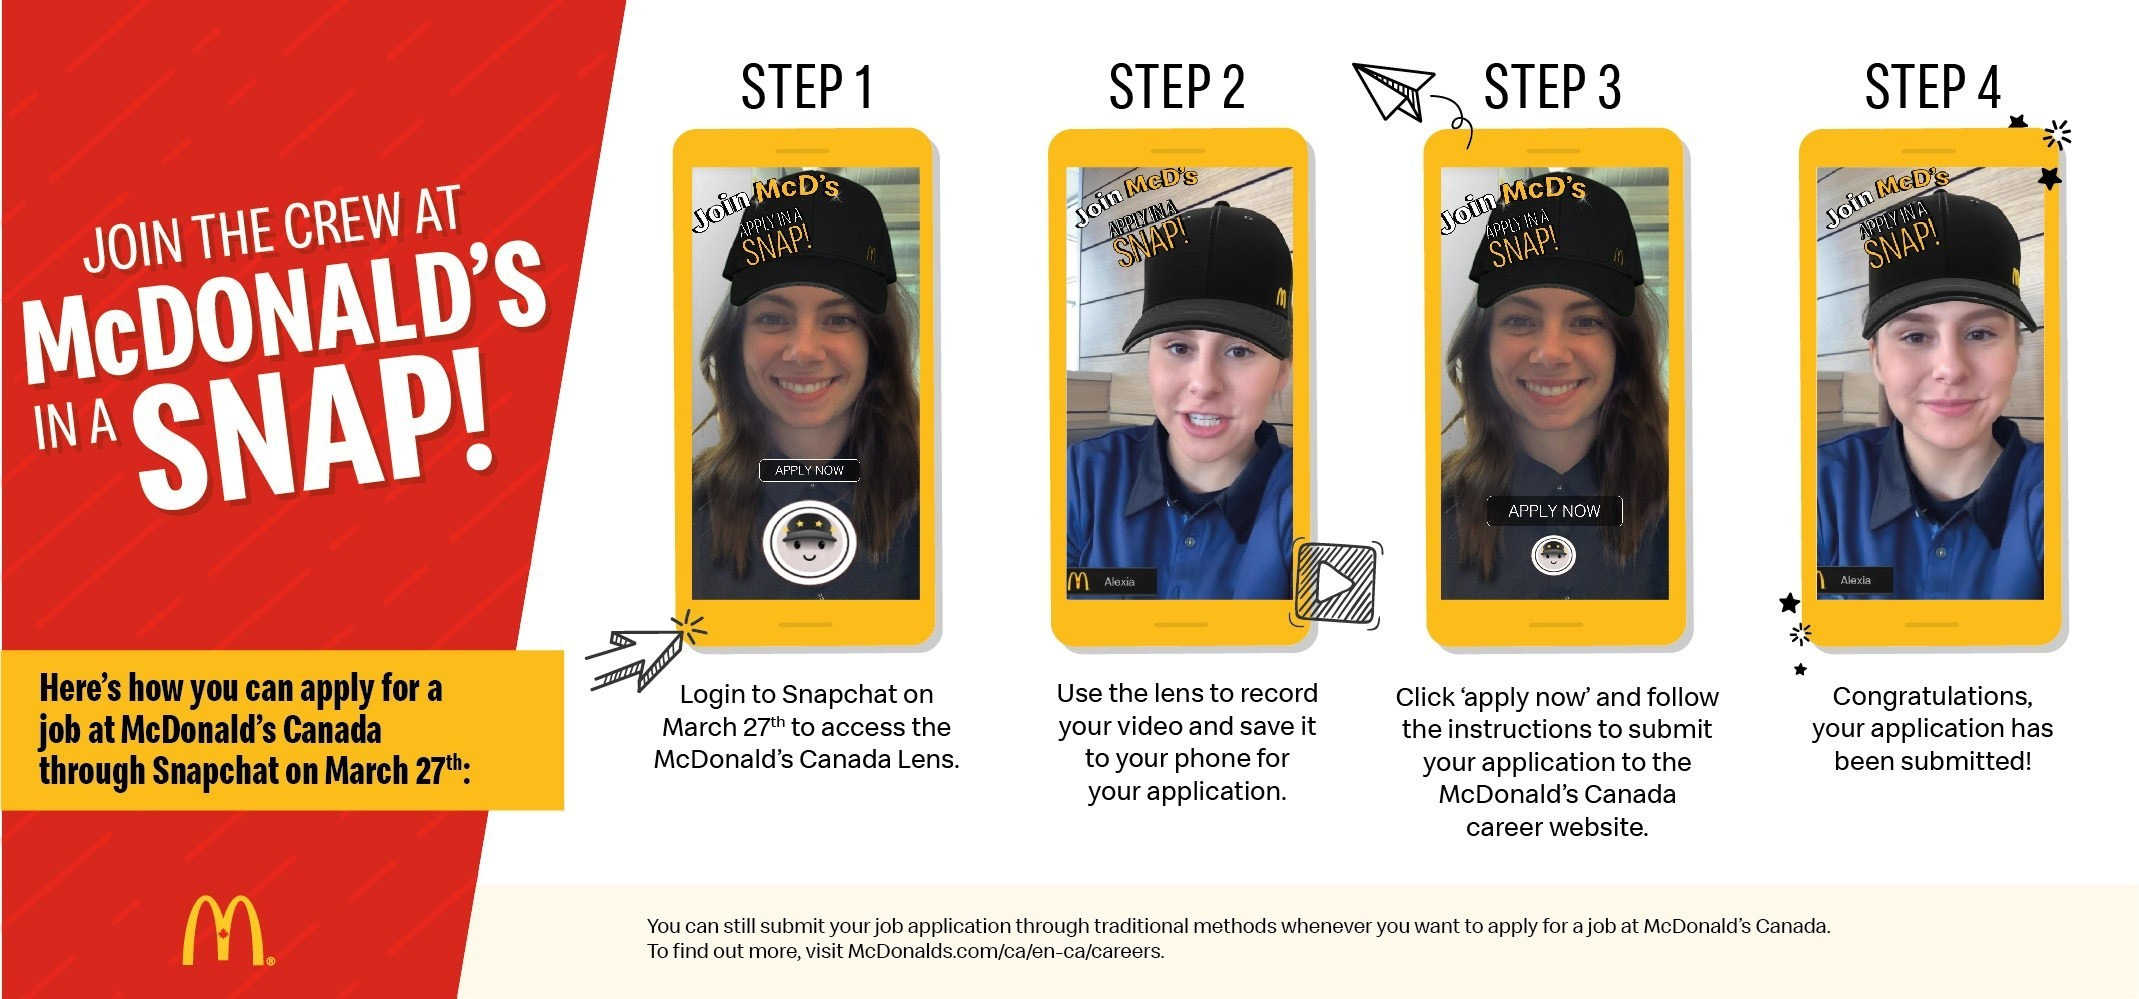 McDonald's using Snapchat to hire workers